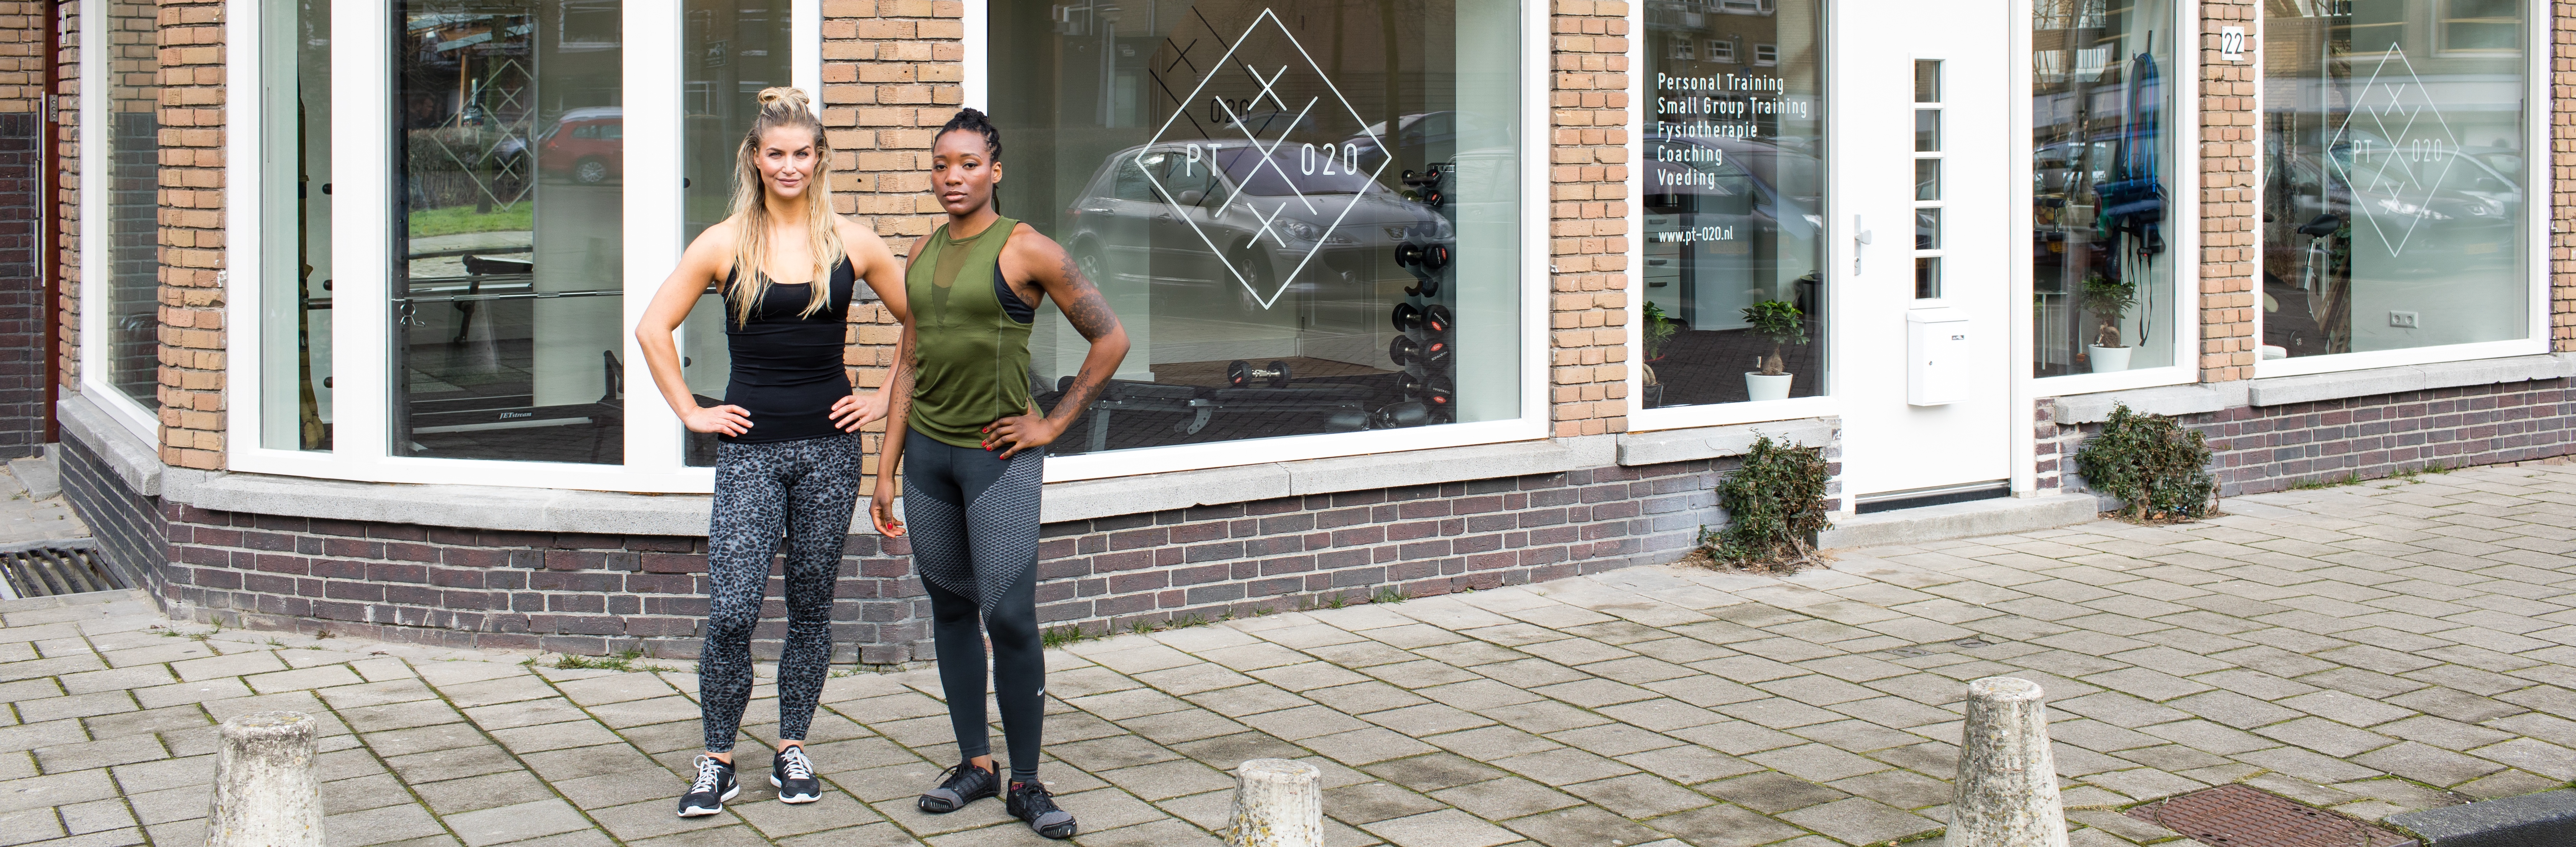 personal trainers Noémia Grot & Ginger Guttmann founders & owners of PT020